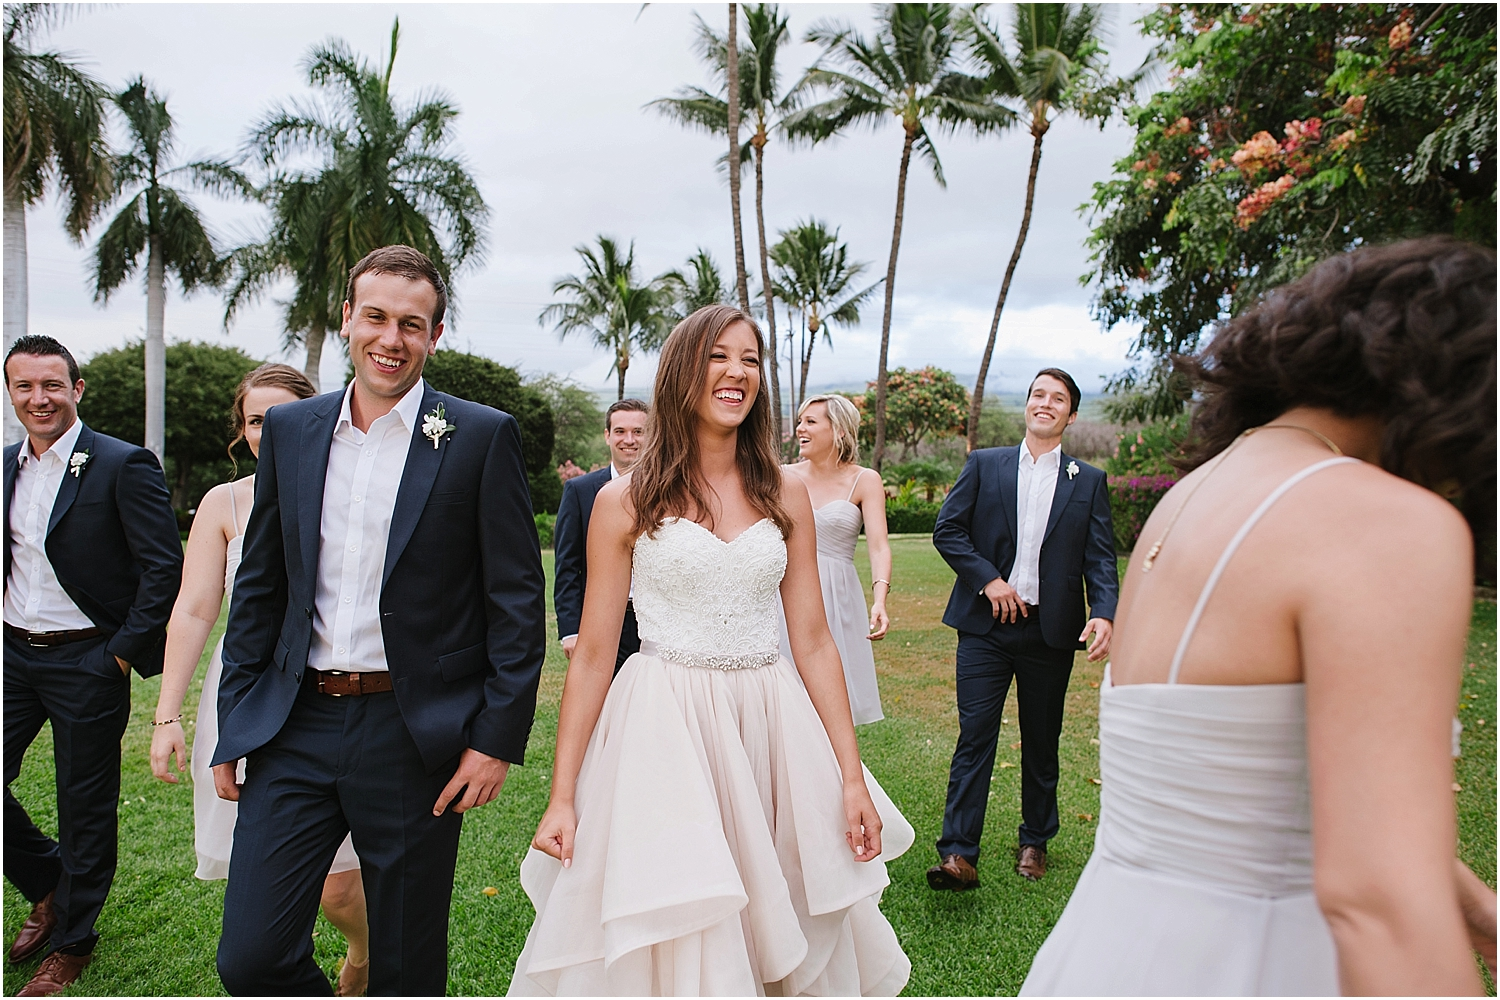 Elegant Maui Destination Wedding at Hotel Wailea_0011.jpg